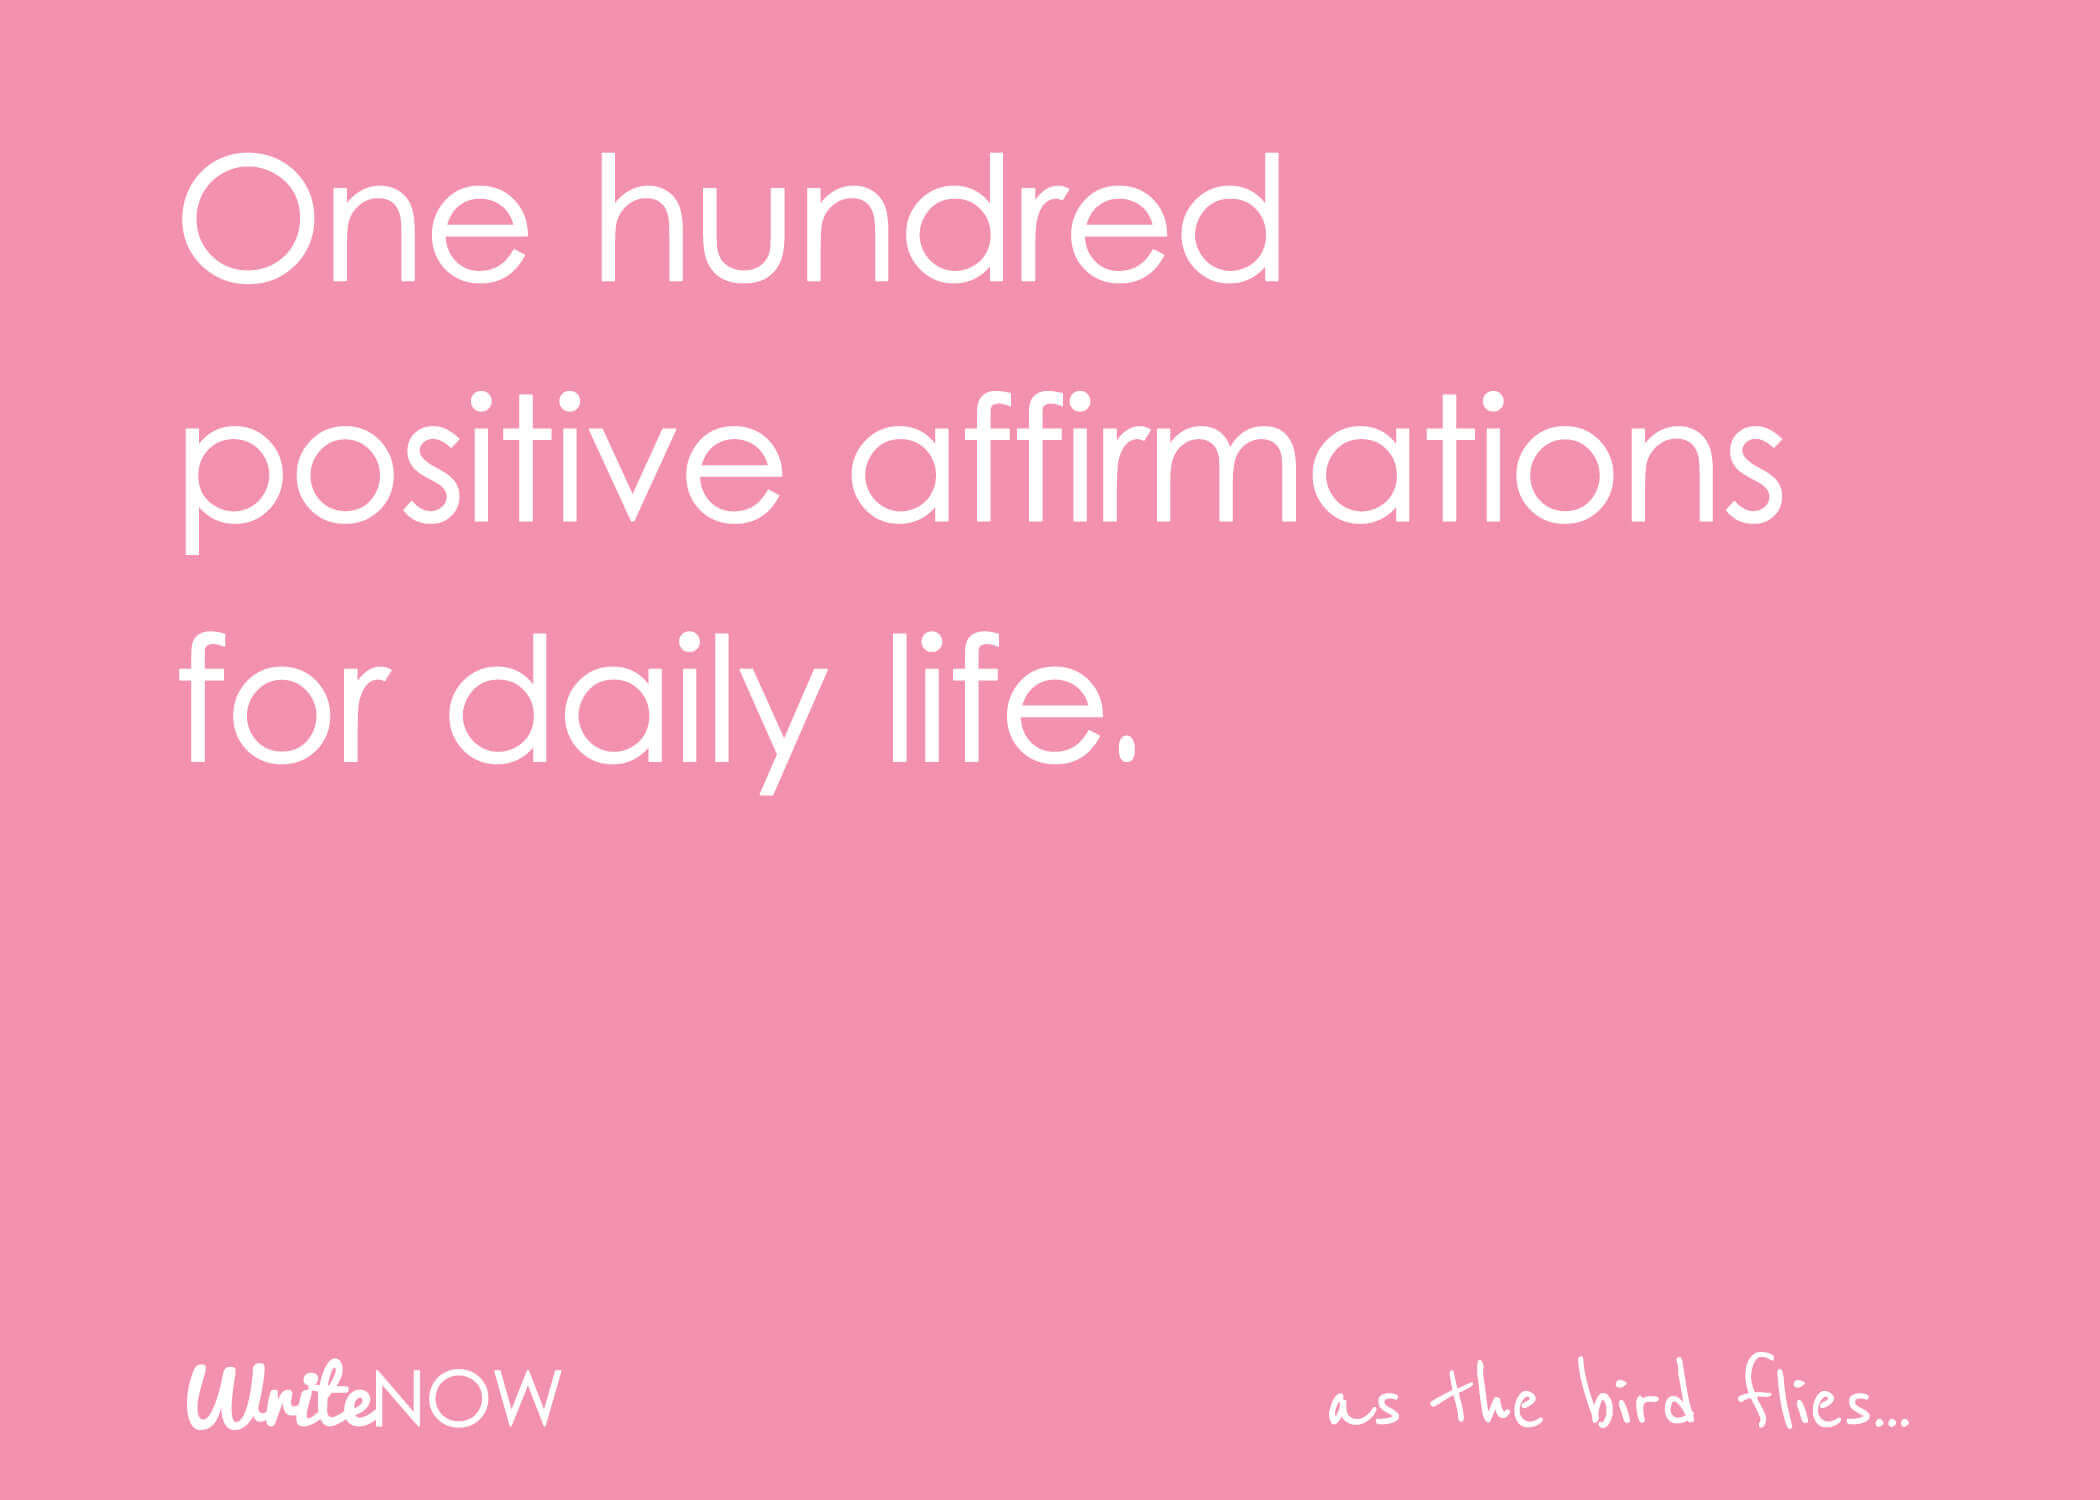 12 Positive Affirmations to Start The Day